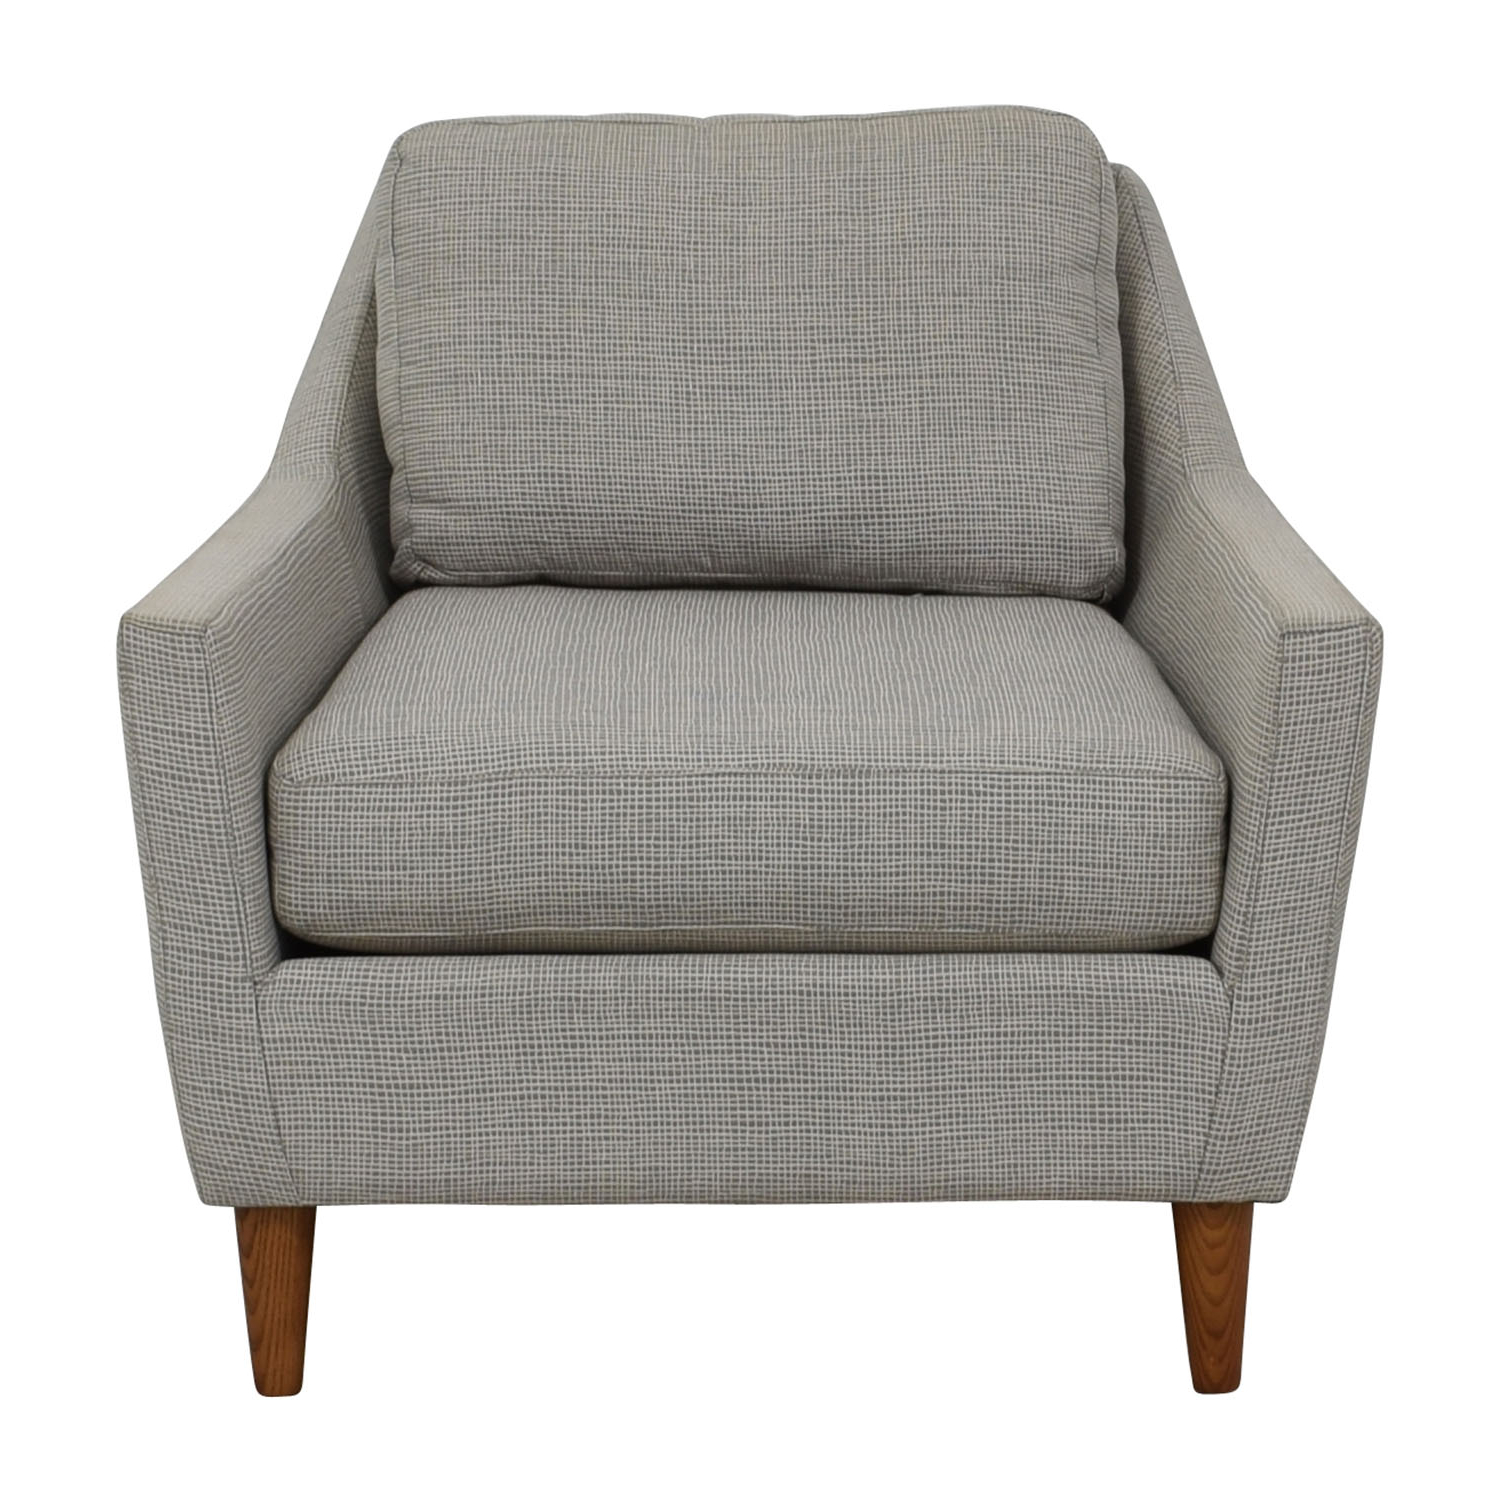 [%66% Off – West Elm West Elm Grey Everett Sofa Chair / Chairs Within Preferred Elm Sofa Chairs|elm Sofa Chairs With Current 66% Off – West Elm West Elm Grey Everett Sofa Chair / Chairs|famous Elm Sofa Chairs Pertaining To 66% Off – West Elm West Elm Grey Everett Sofa Chair / Chairs|most Popular 66% Off – West Elm West Elm Grey Everett Sofa Chair / Chairs Regarding Elm Sofa Chairs%] (View 2 of 20)